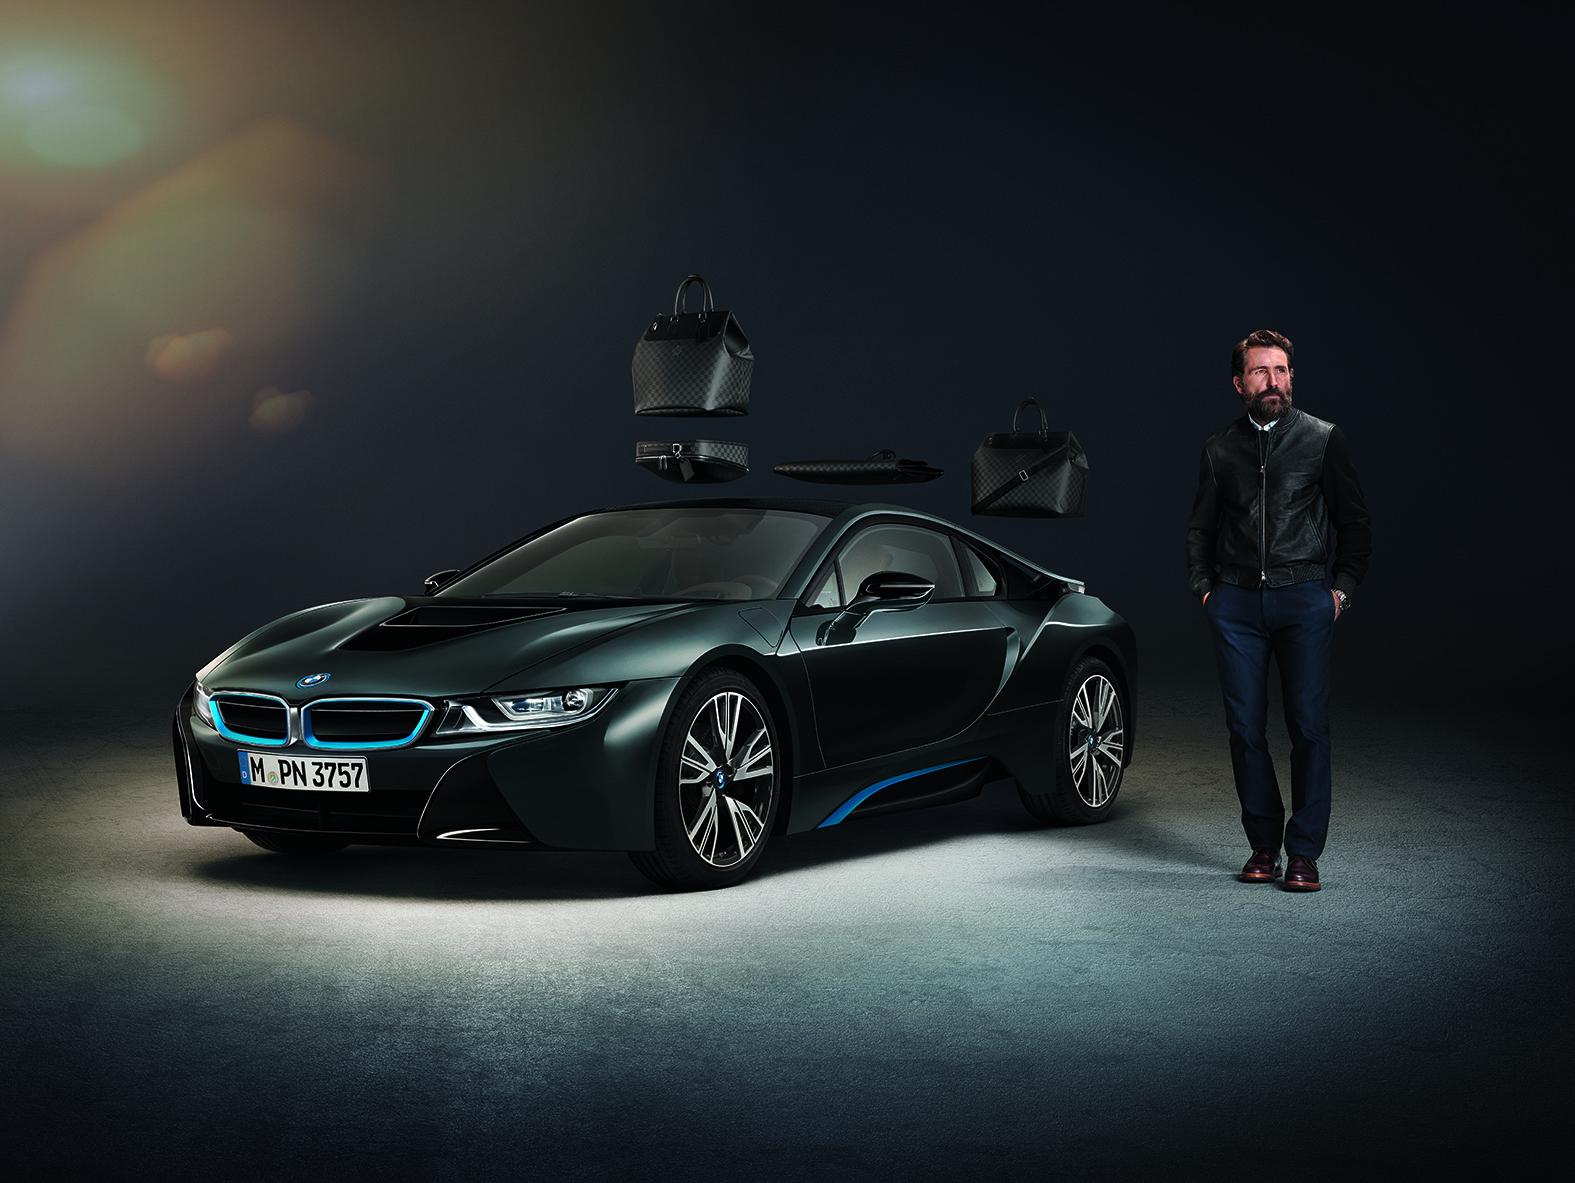 Louis Vuitton Bmw I8 Collection Cars Life Cars Fashion